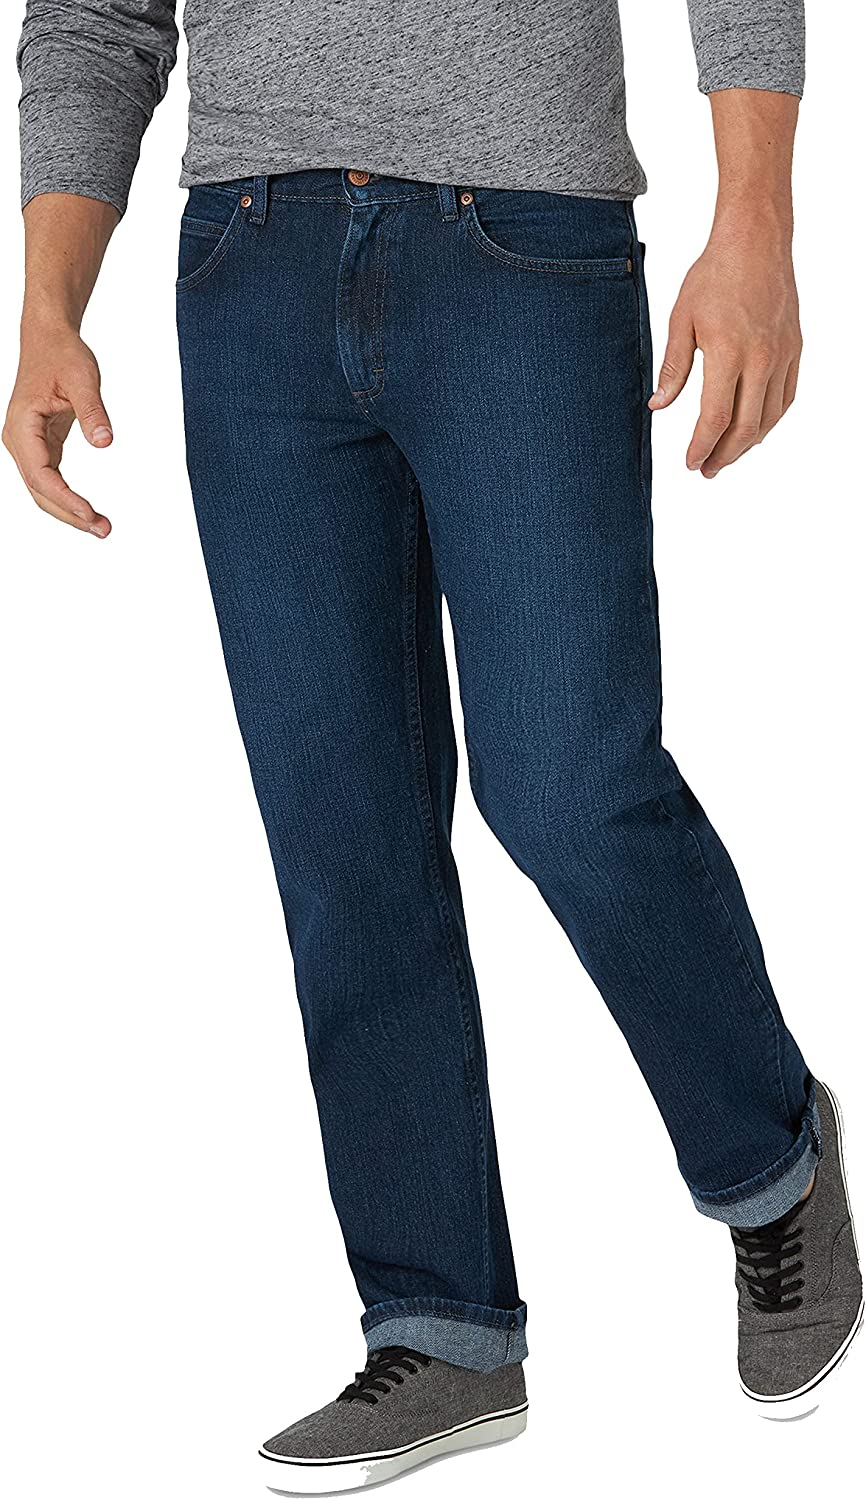 Lee Men's Legendary Raleigh Mall Regular Leg Fit Jean Sales of SALE items from new works Straight